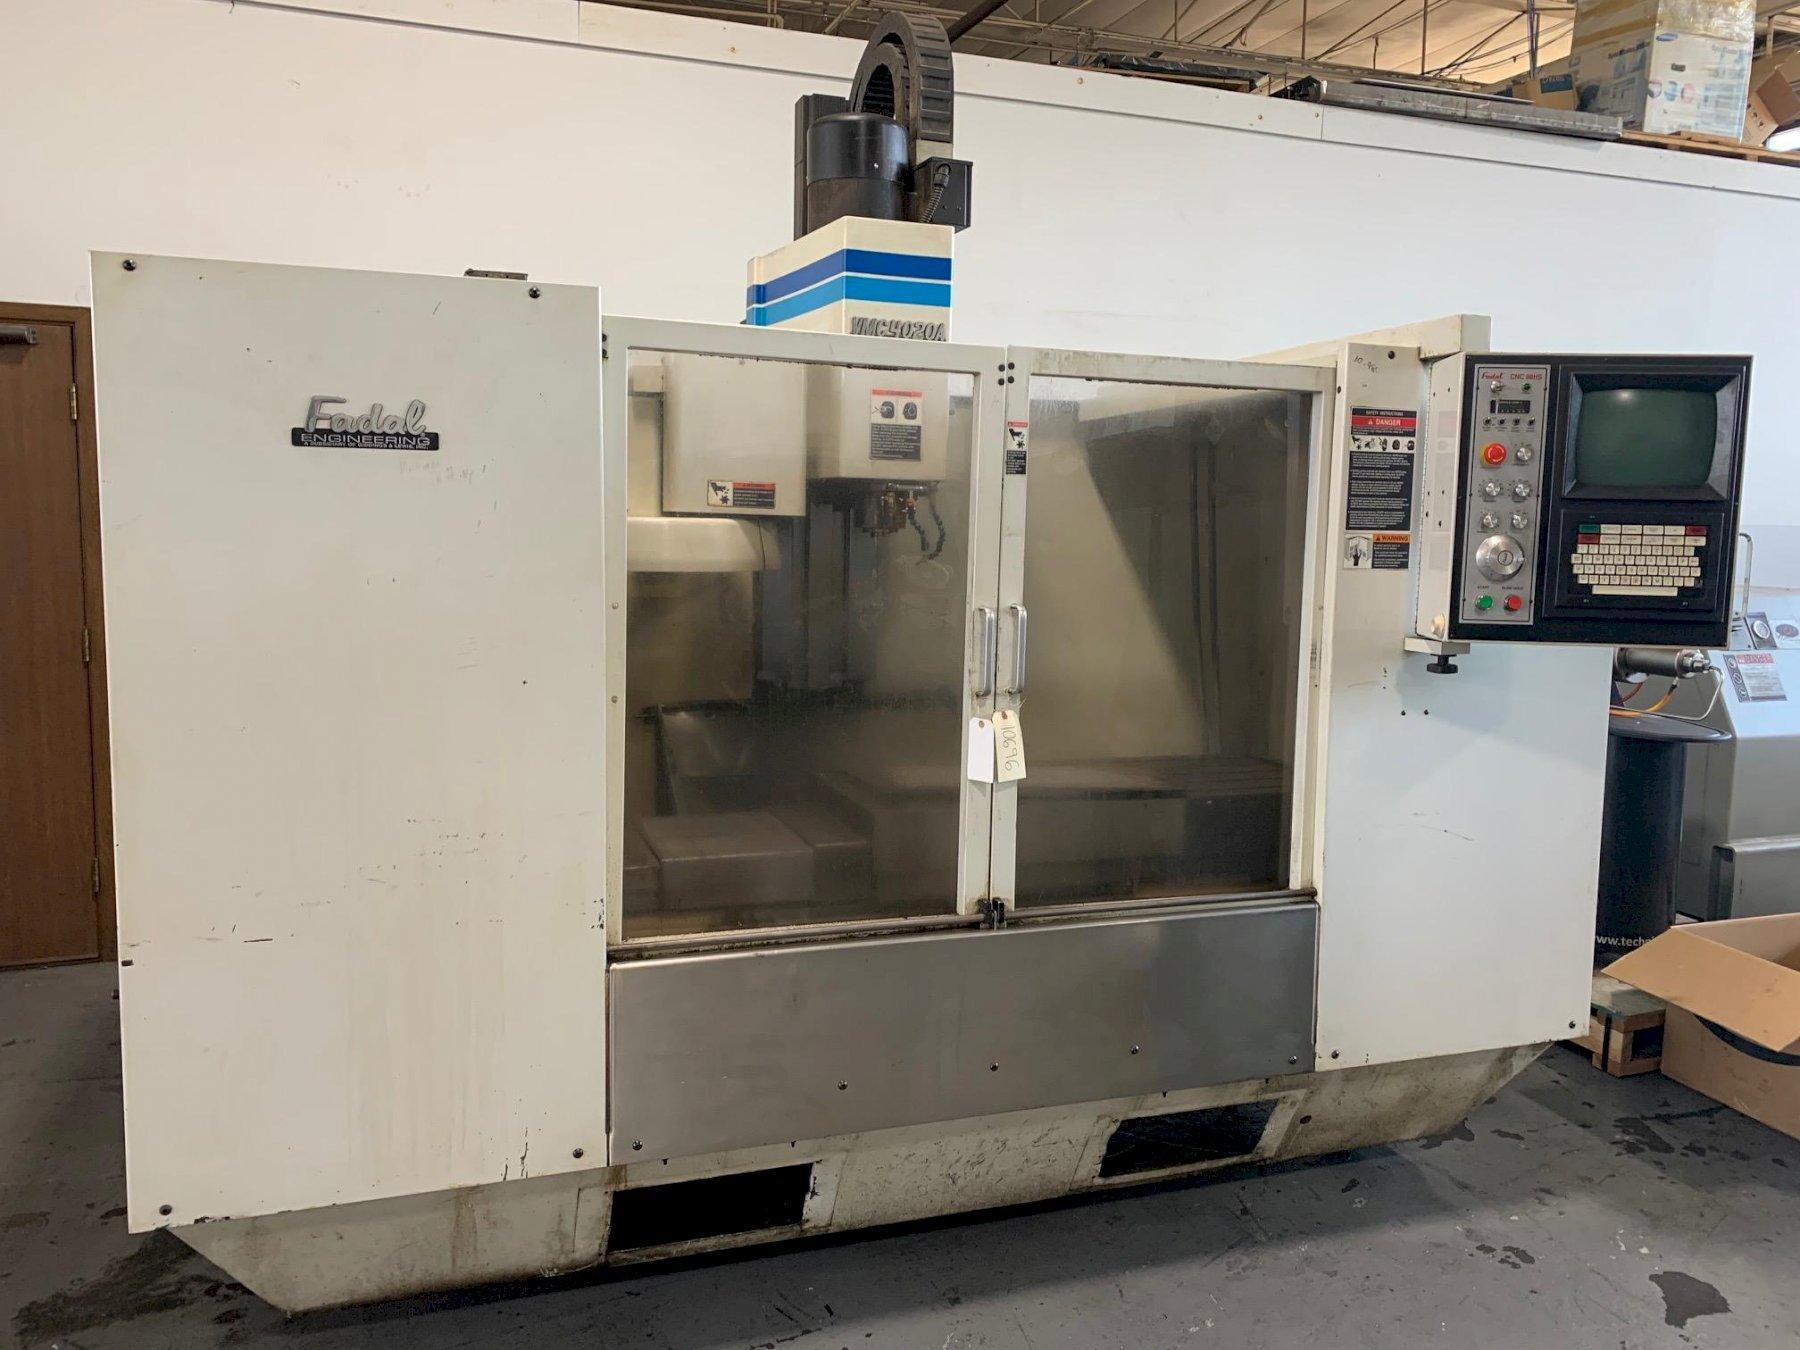 USED FADAL MODEL 4020 3-AXIS CNC VERTICAL MACHINING CENTER, Year 1997, Stock # 10696